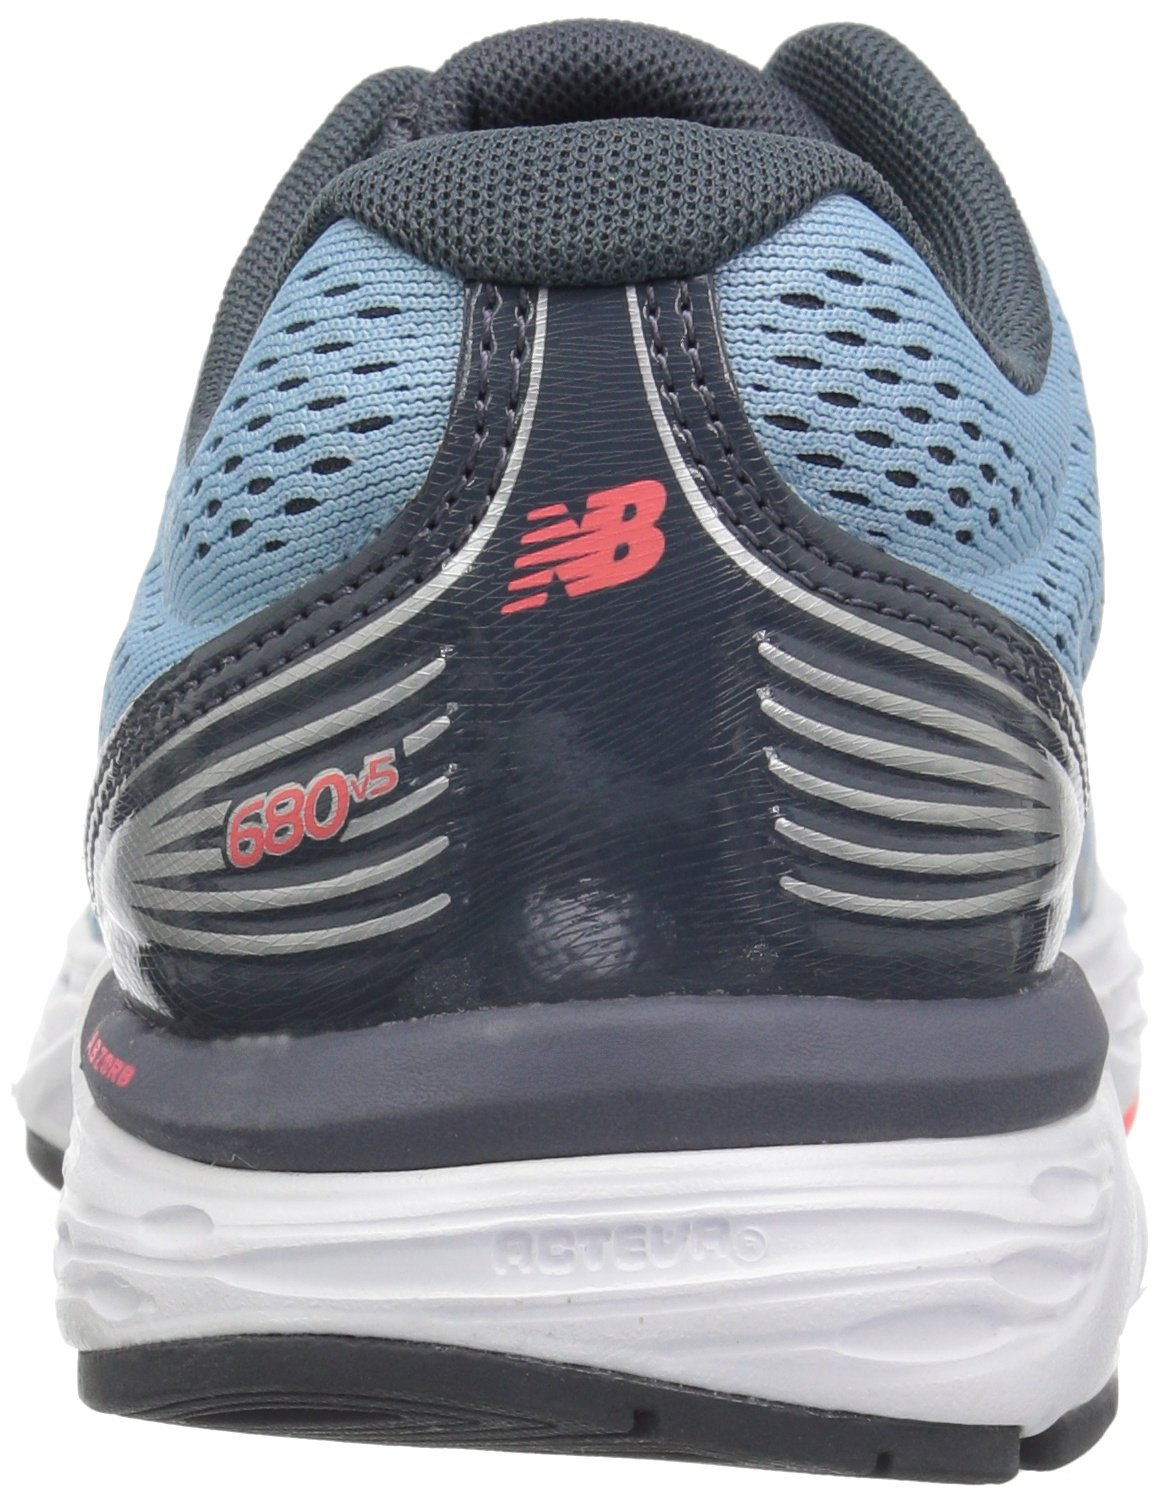 New Balance Women's 680v5 Cushioning Running Shoe B06XSFBWX9 9 B(M) US|Sky Blue